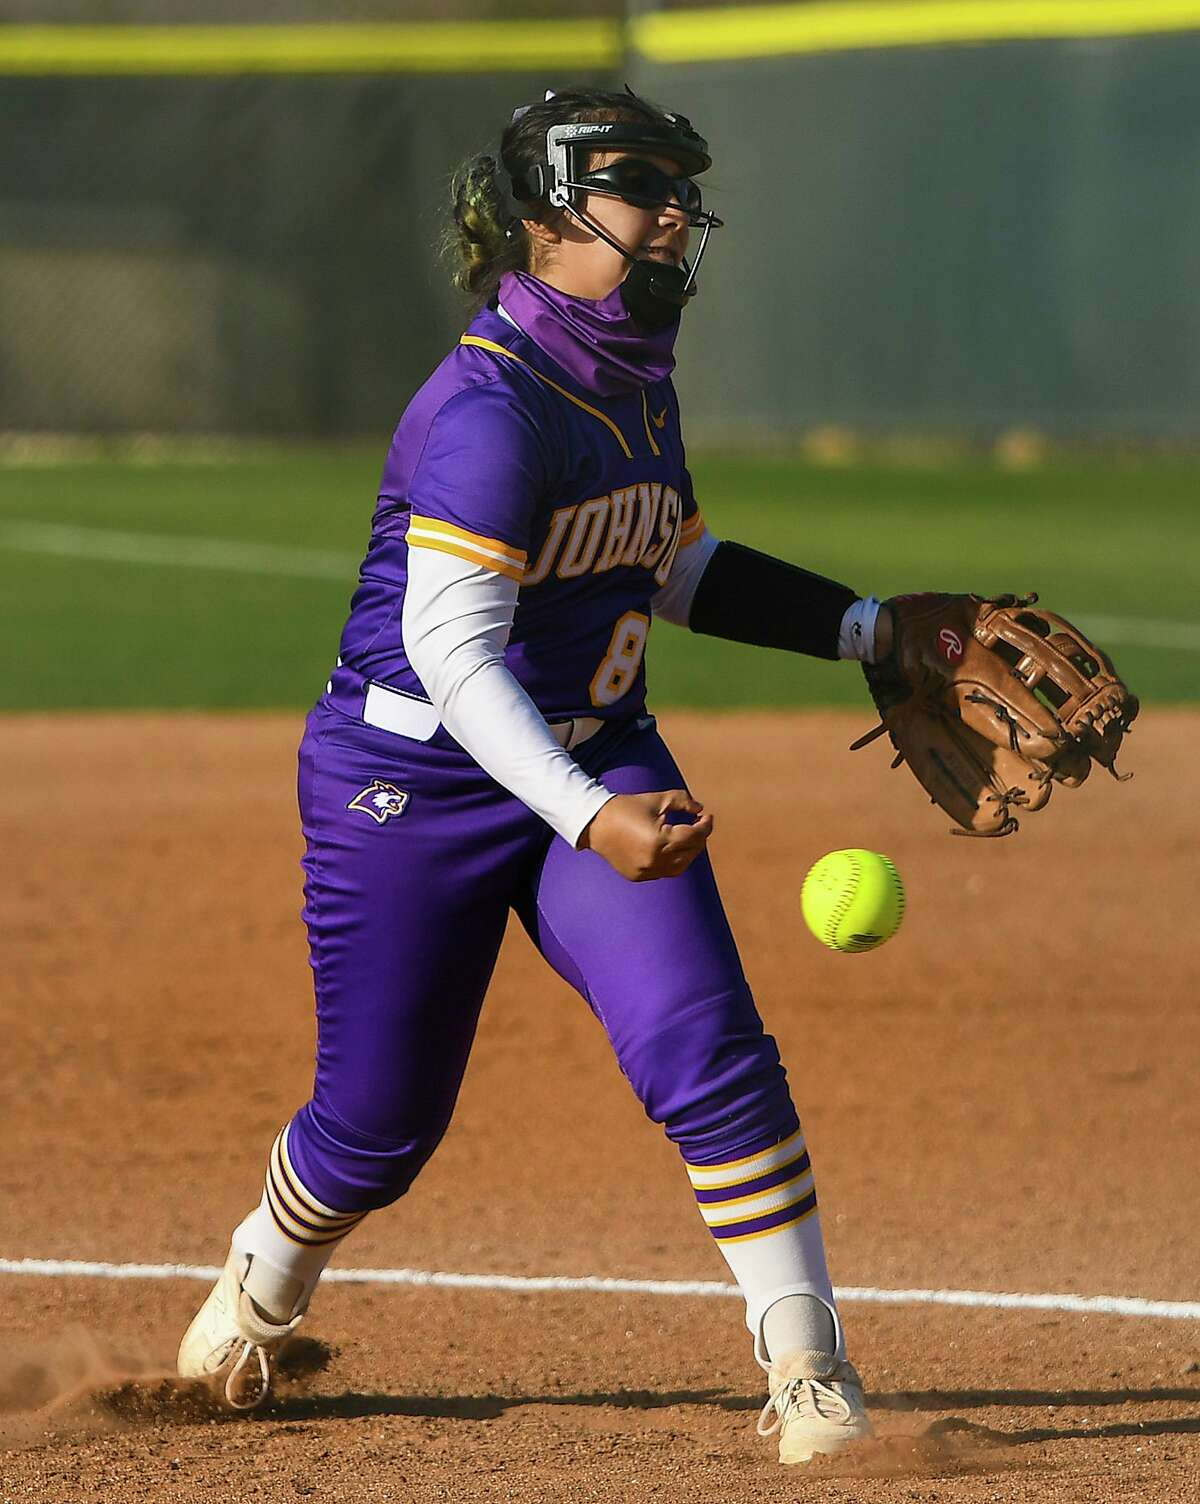 Jennifer Lopez was one of 10 LBJ players to earn All-Academic honors this season.